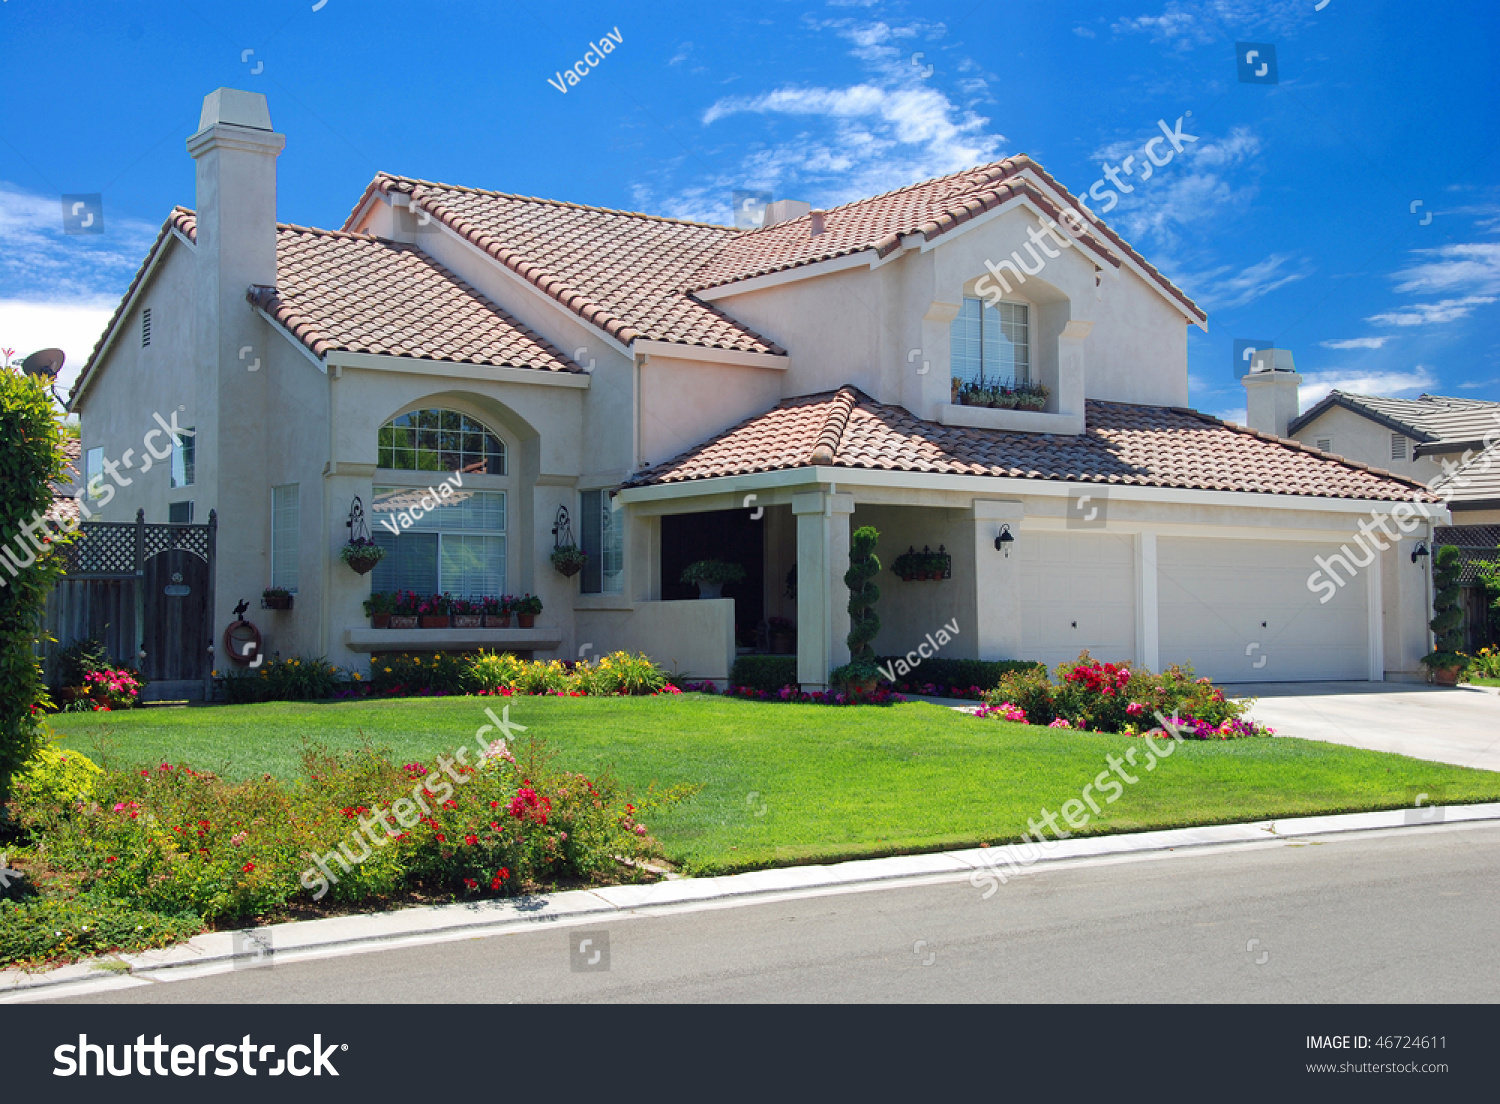 New american dream home stock photo 46724611 shutterstock for New american home